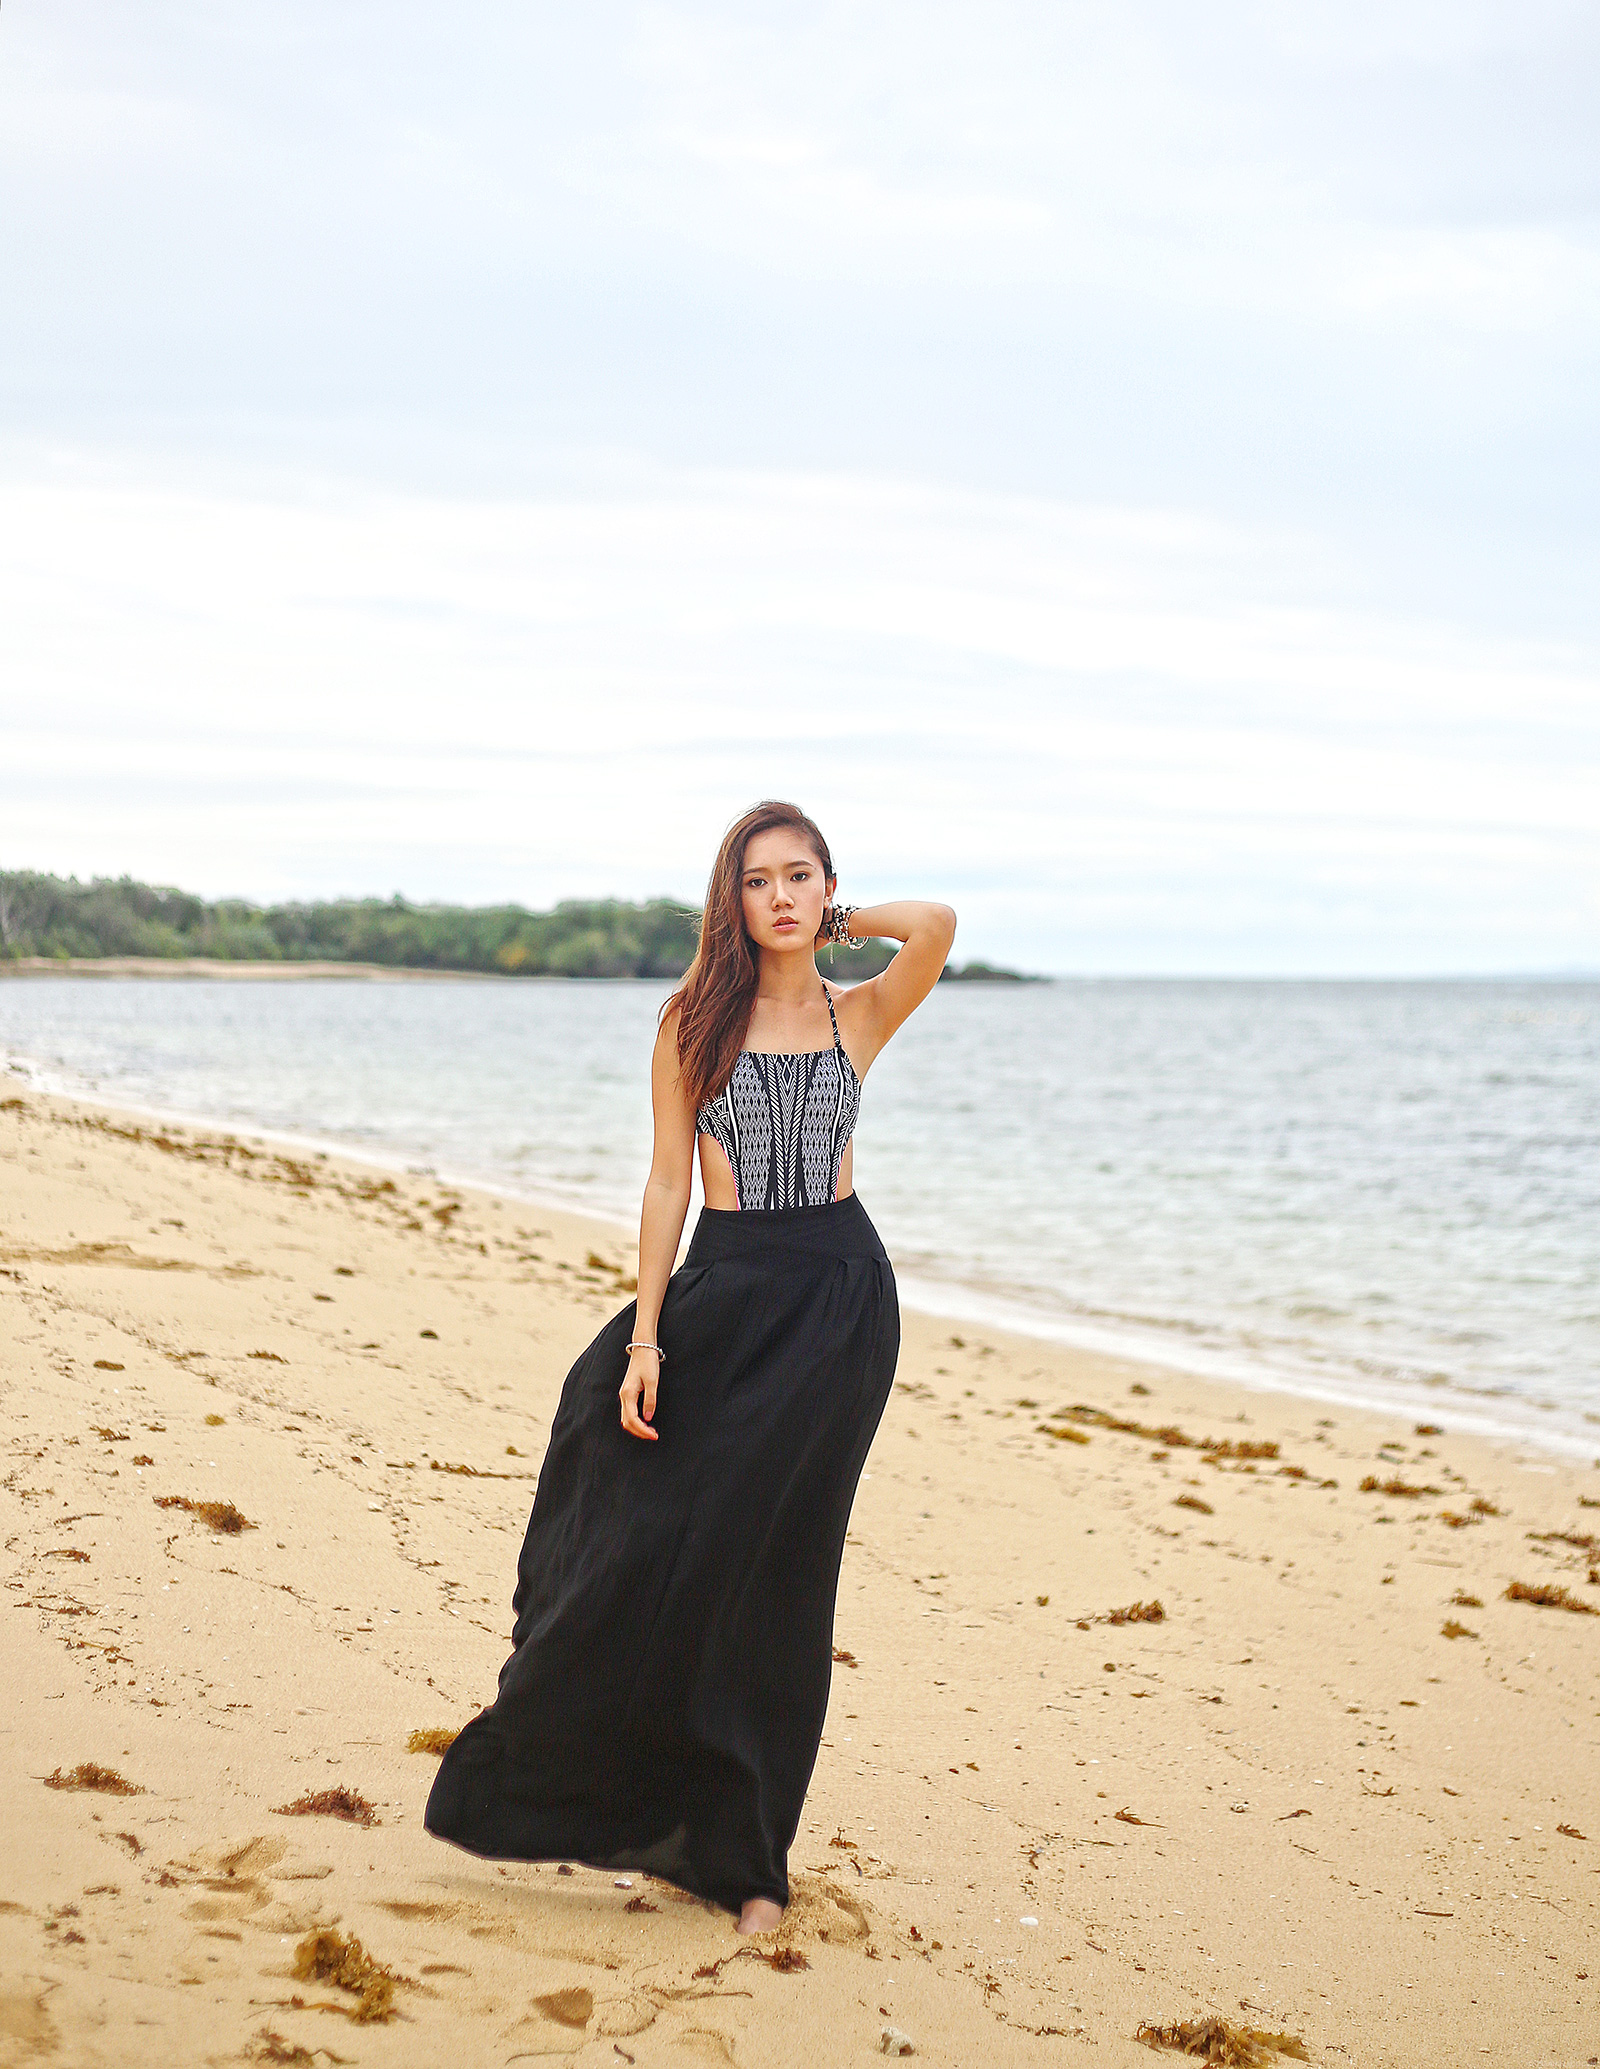 Debenhams one-piece swimsuit, H&M maxi skirt, beach fashion at Balesin | www.itscamilleco.com